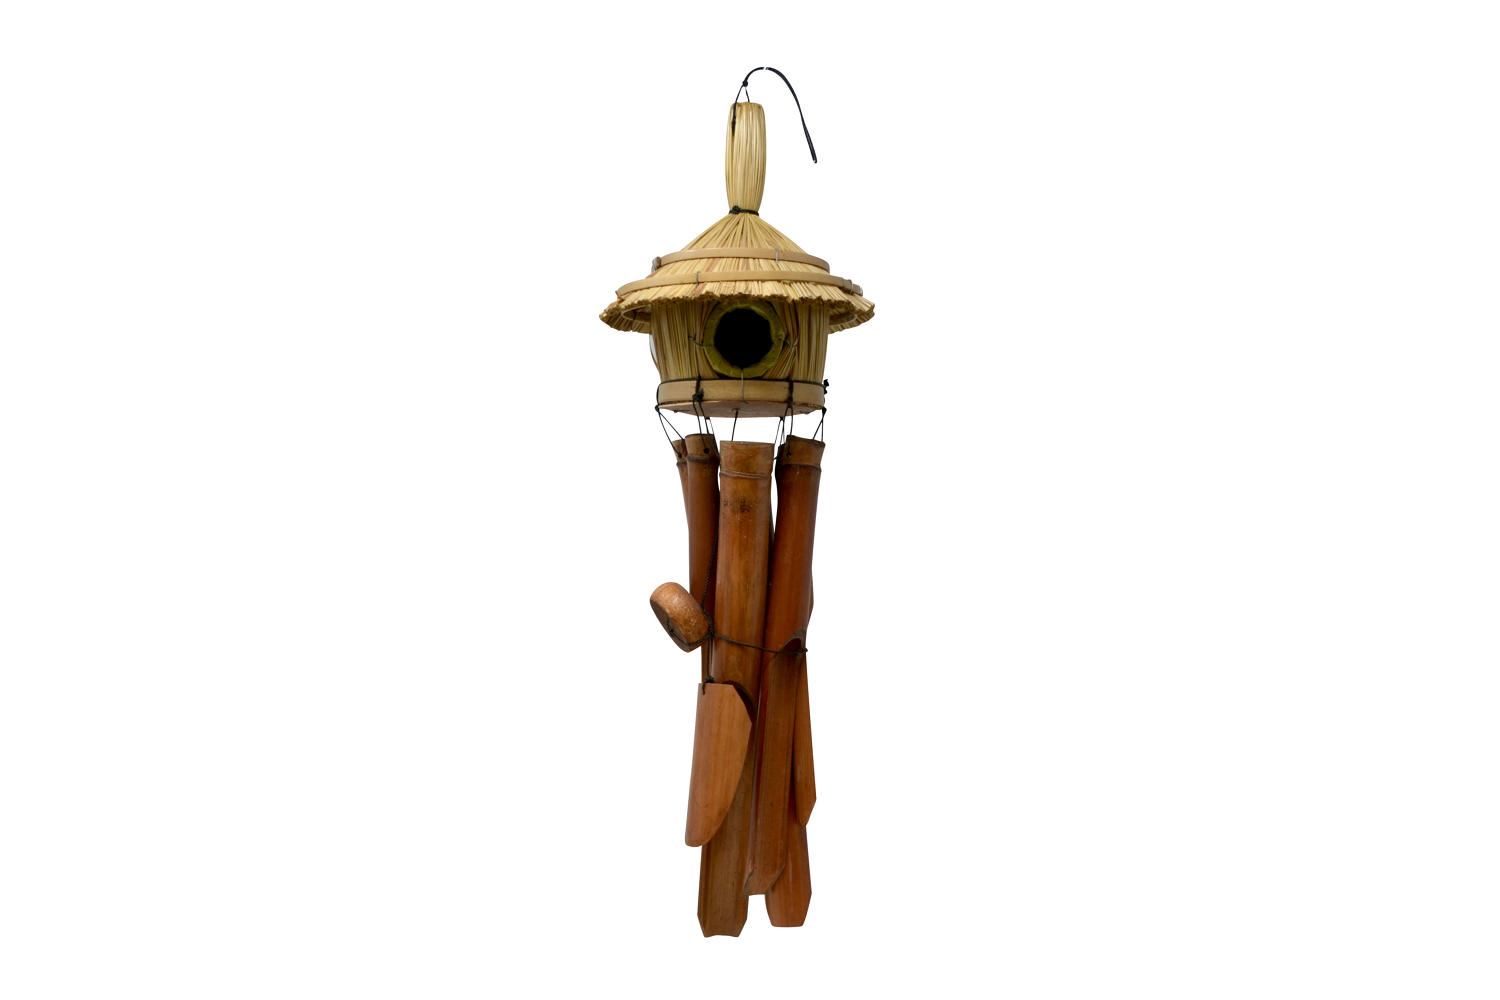 Hut Wind Chime